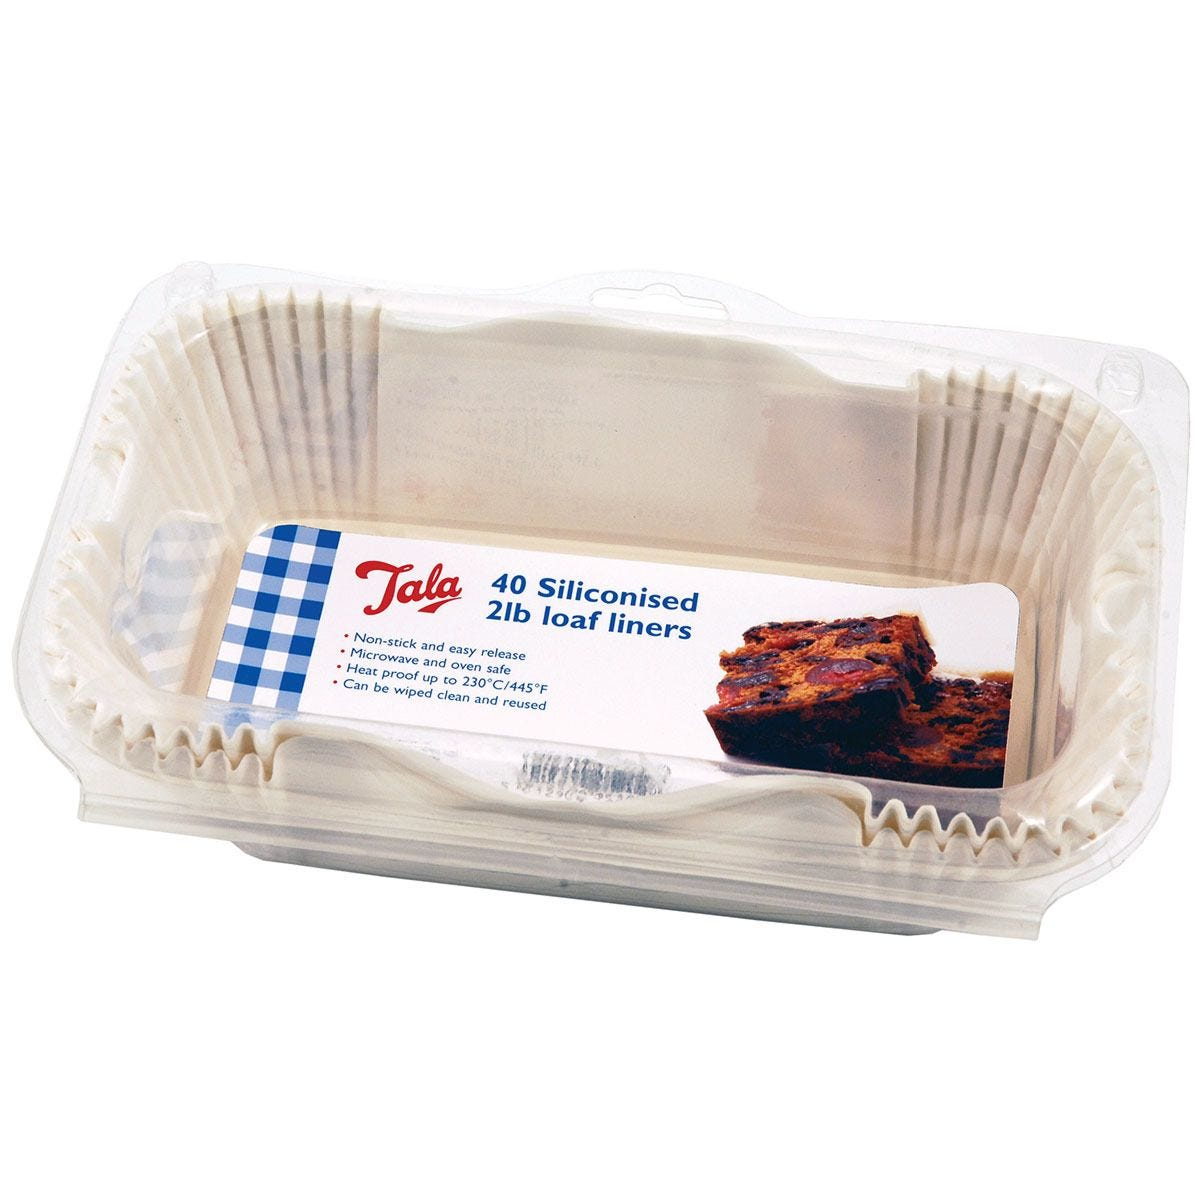 Tala Siliconised 2lb Loaf Liners - Set of 40